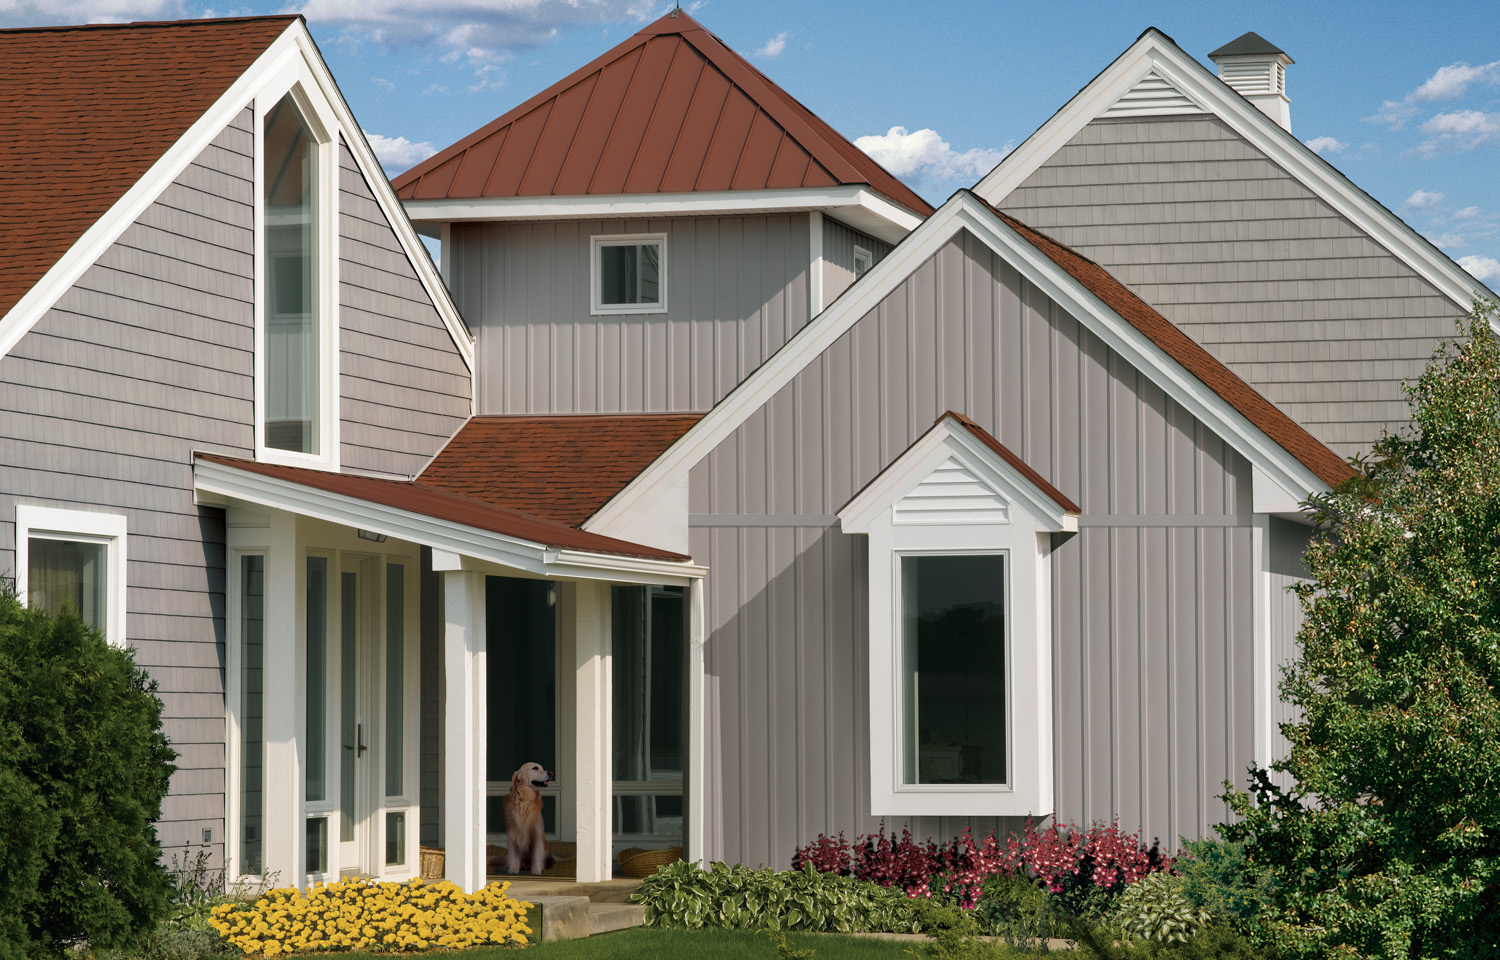 By mixing and matching shingles with board and batten siding in the same color it emphasizes the architecture and creates a